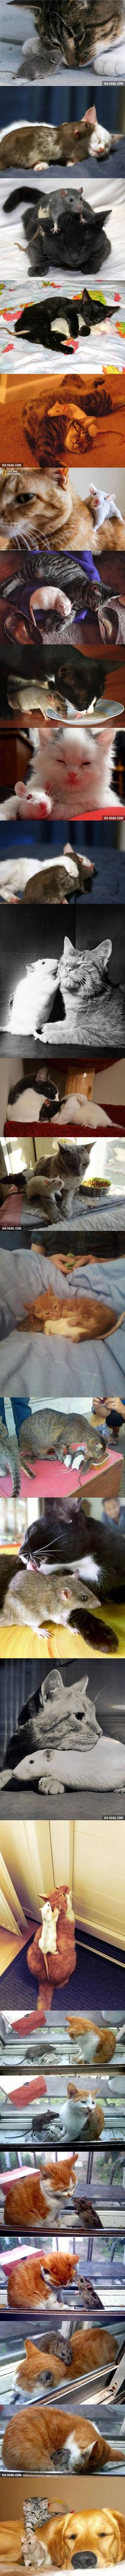 best cats images on pinterest in funny animals funny